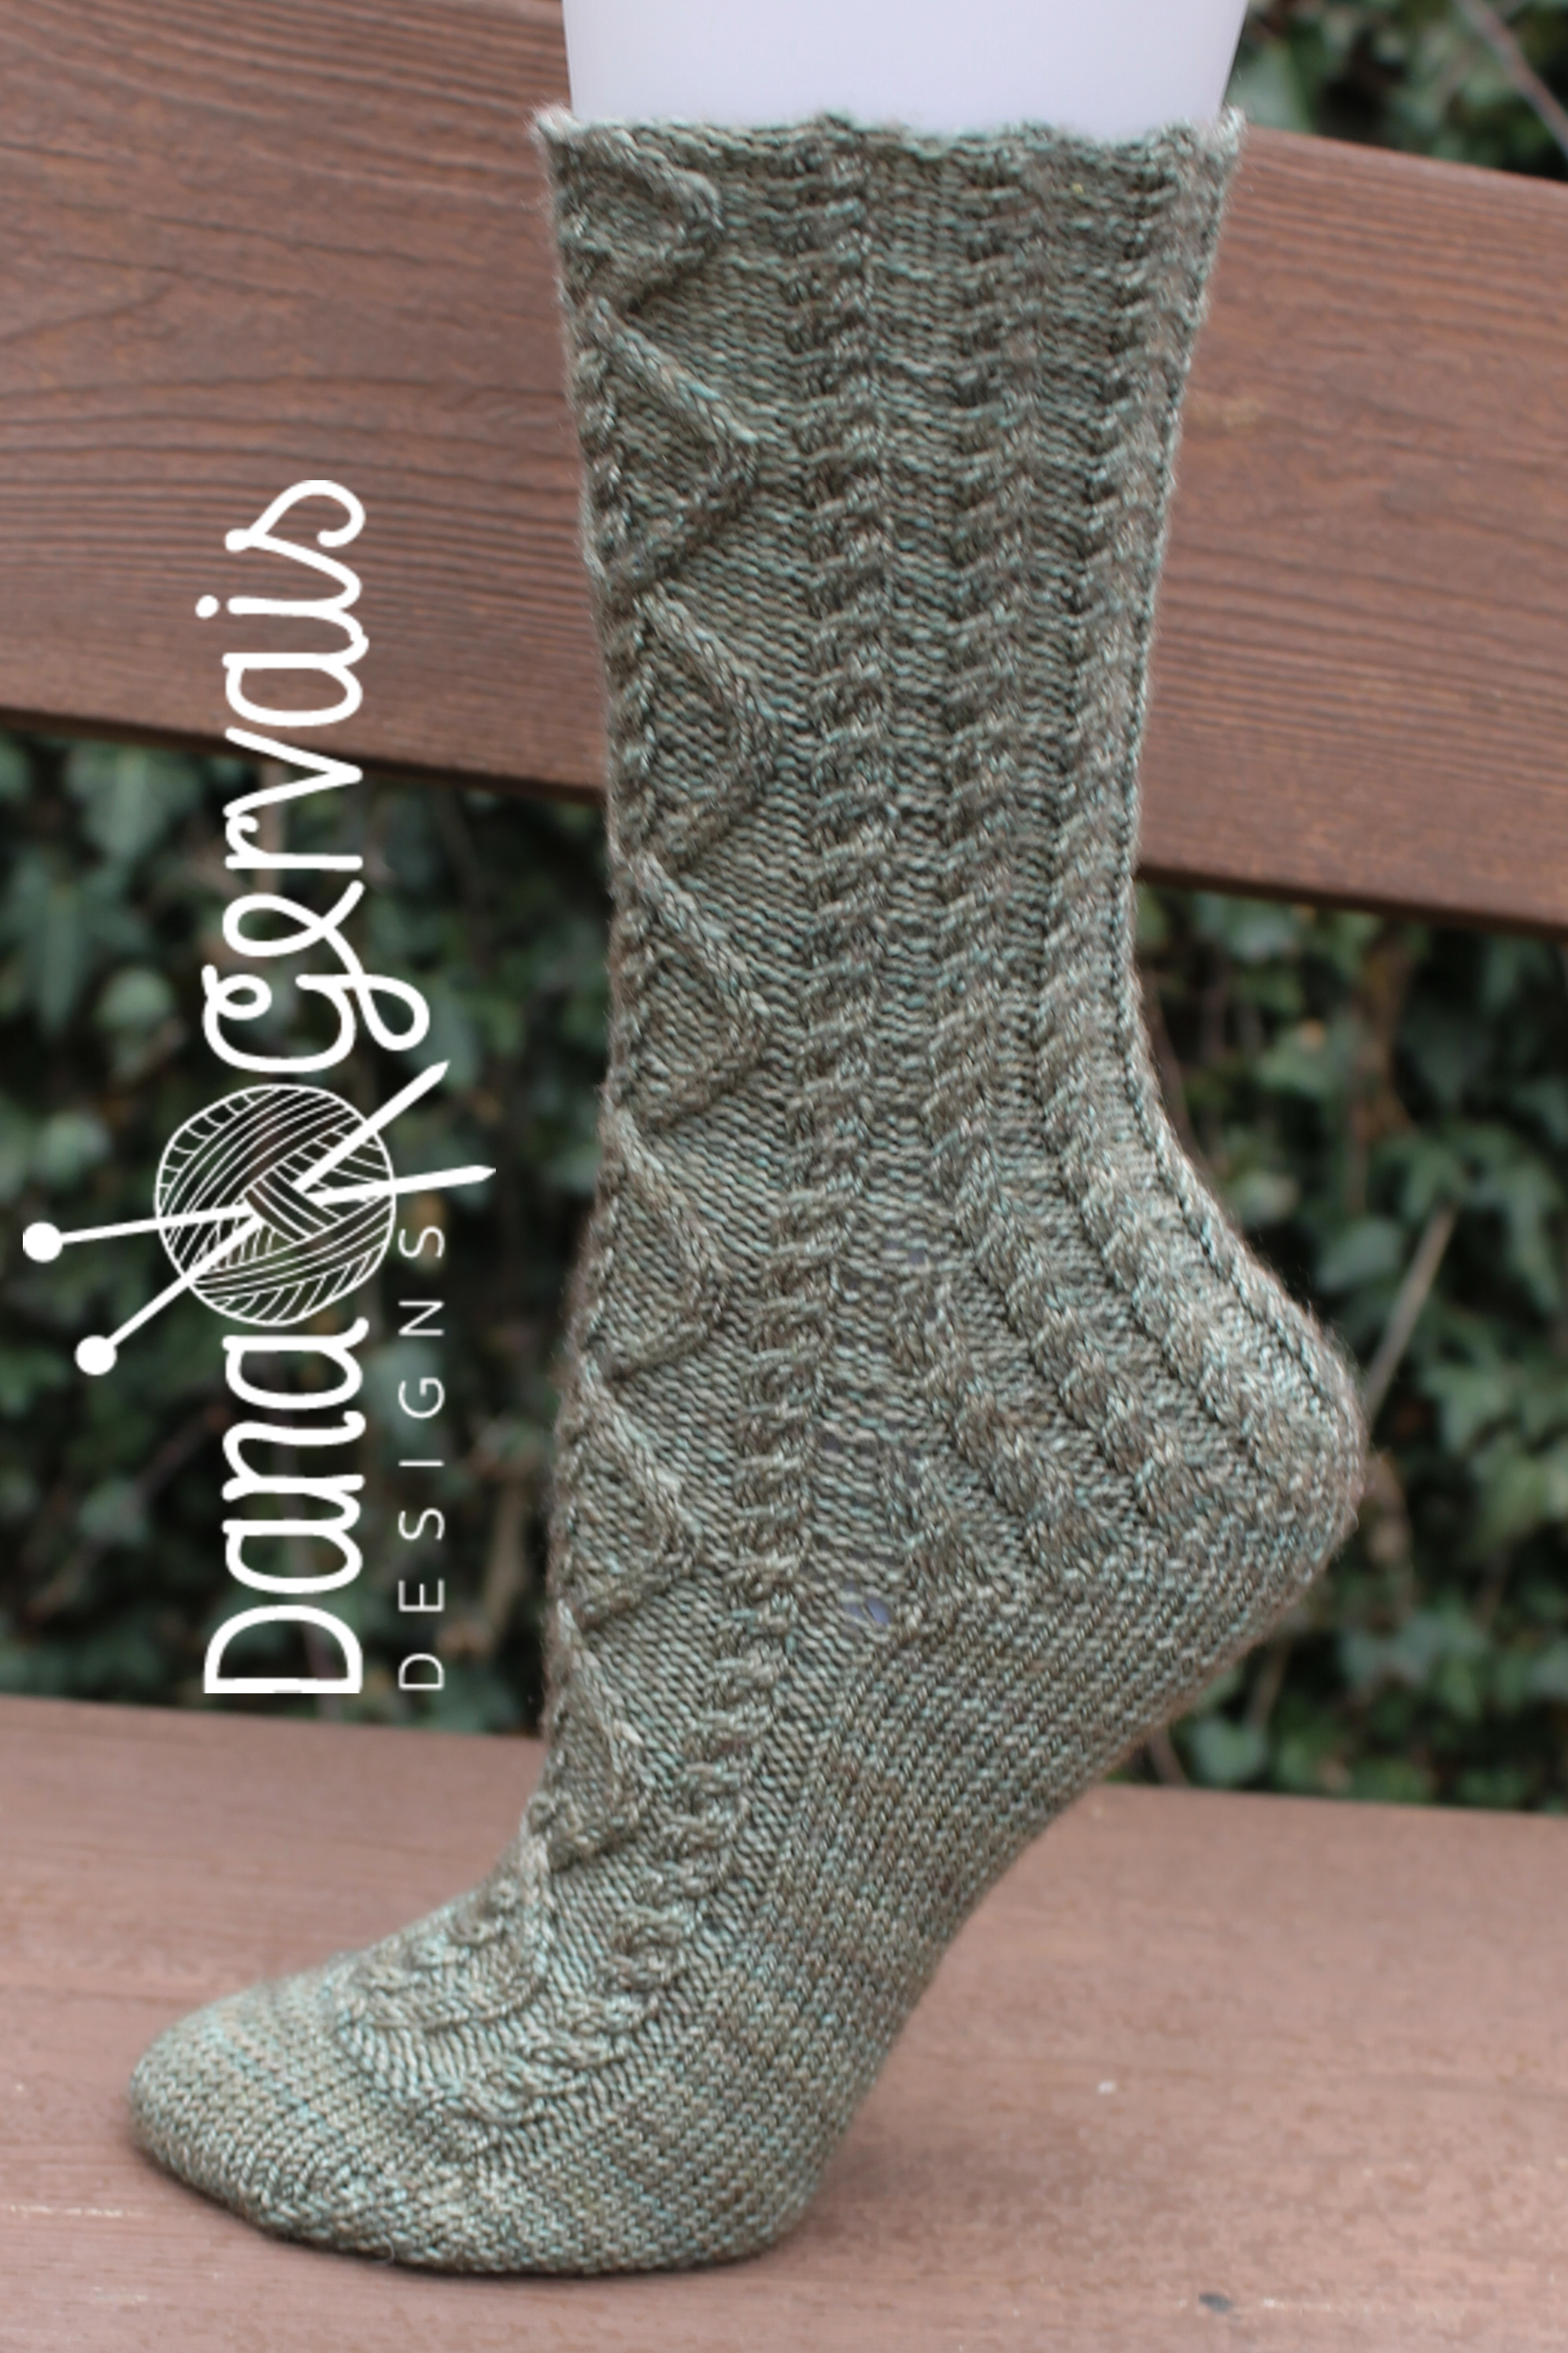 Lerwick is an example of a sock with a rounded toe